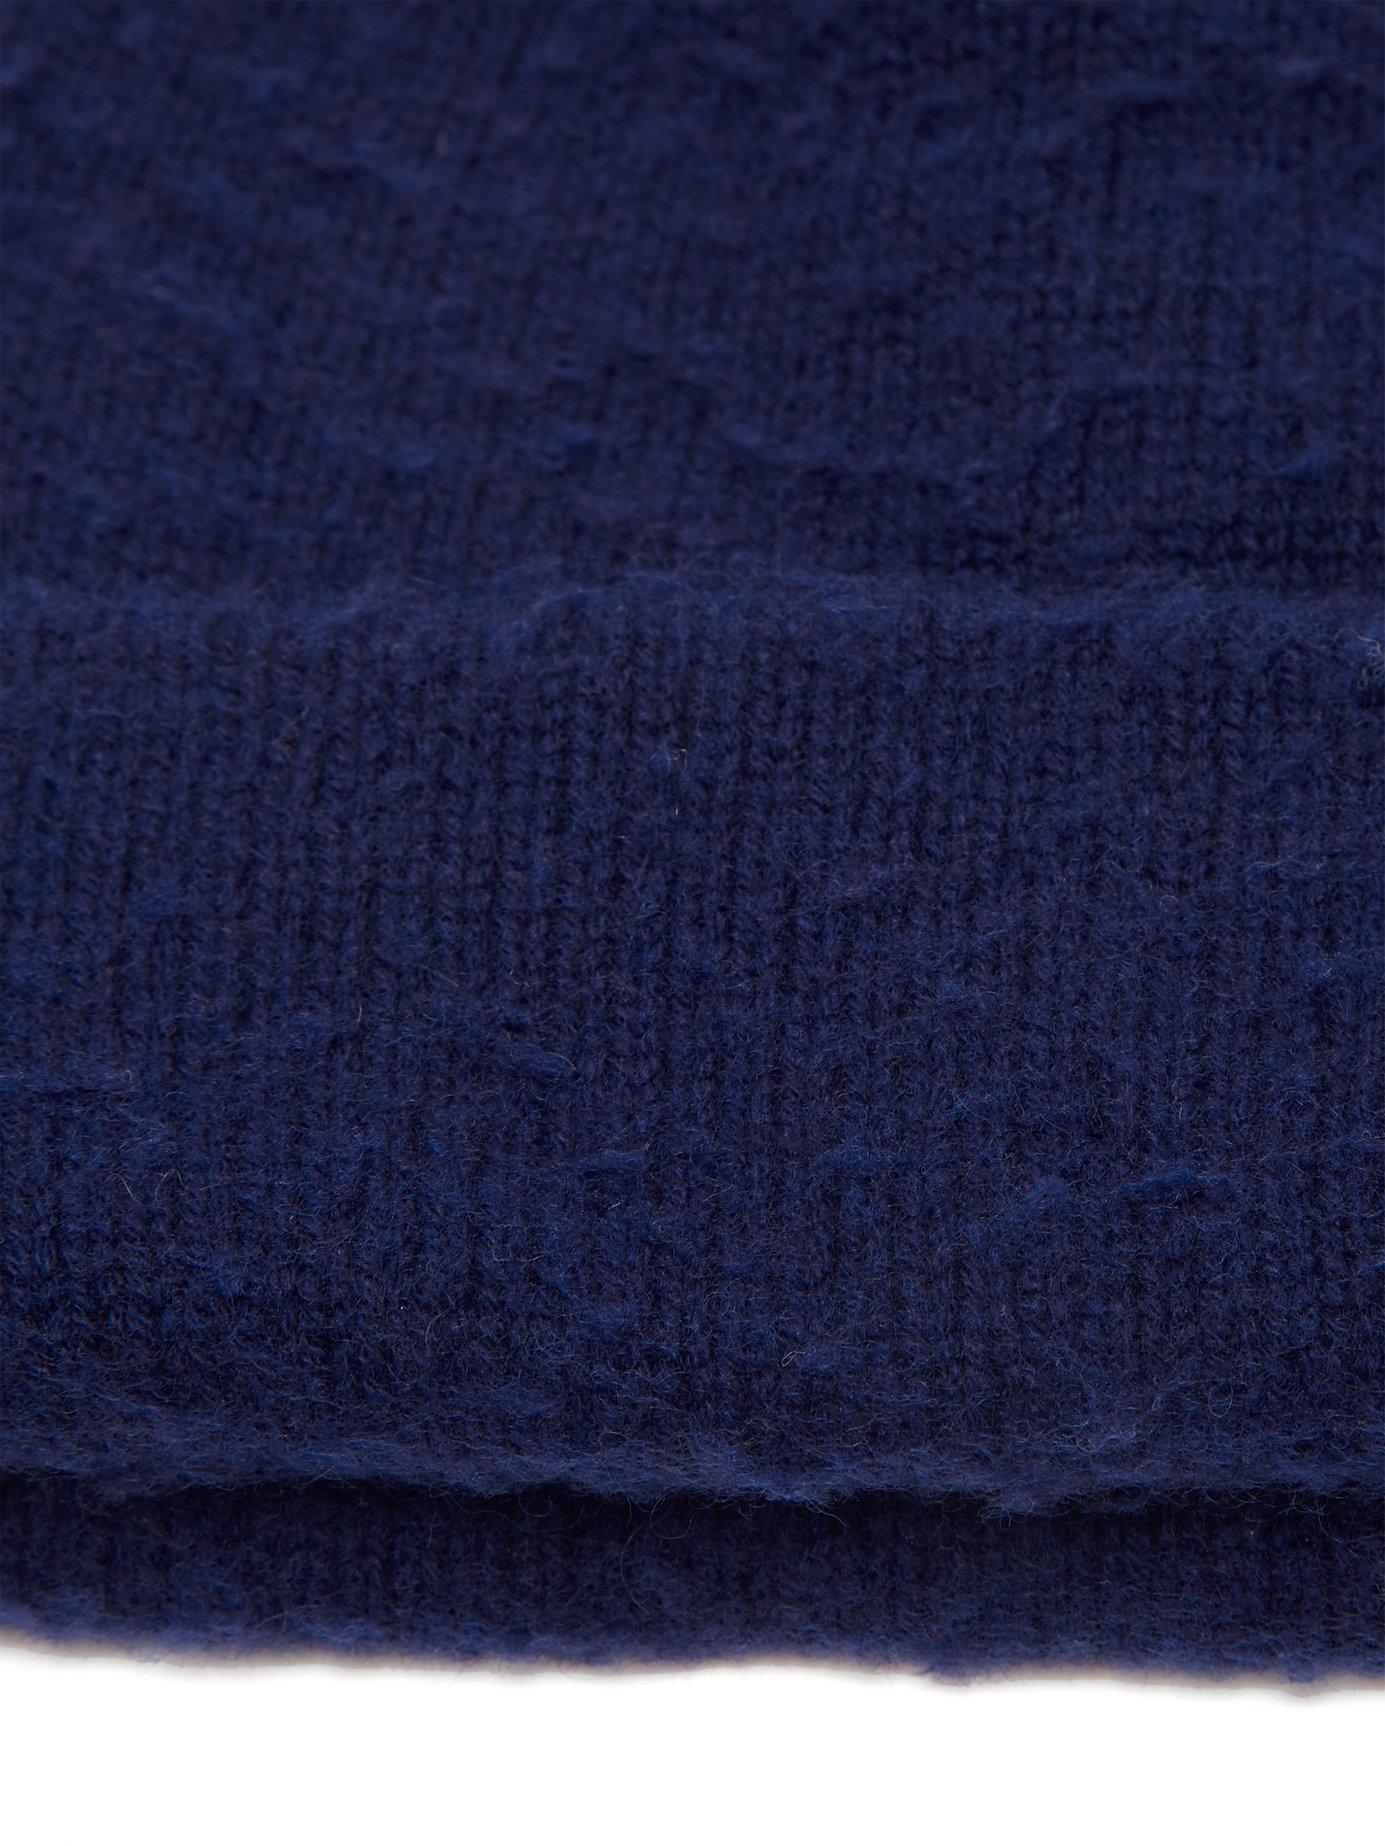 fdc8080d393 Lyst - Acne Studios Pilled Wool Blend Beanie Hat in Blue for Men